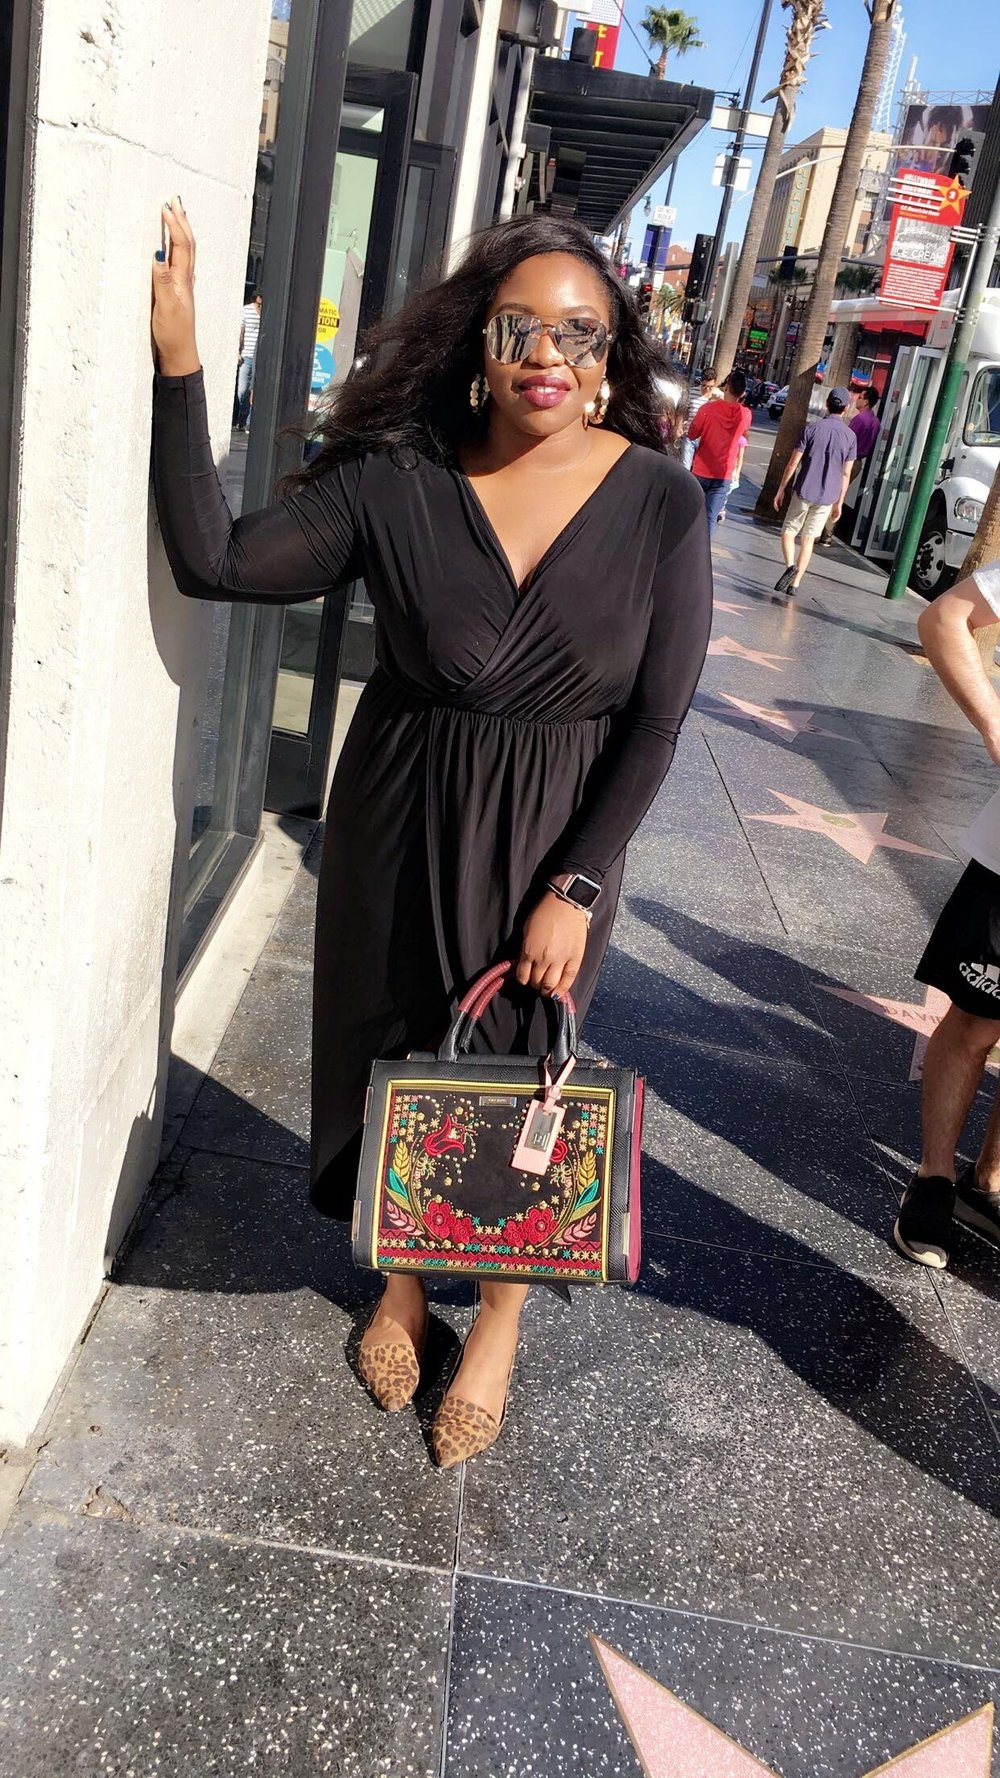 """Outfit details: Dress- Boohoo, Bag-River Island, Earrings- H&M, Sunglasses- """"High Key"""" by Quay Australia X Desi Perkins   To the right is Kevin Hart's star-- had to show my favorite comedian some love!"""